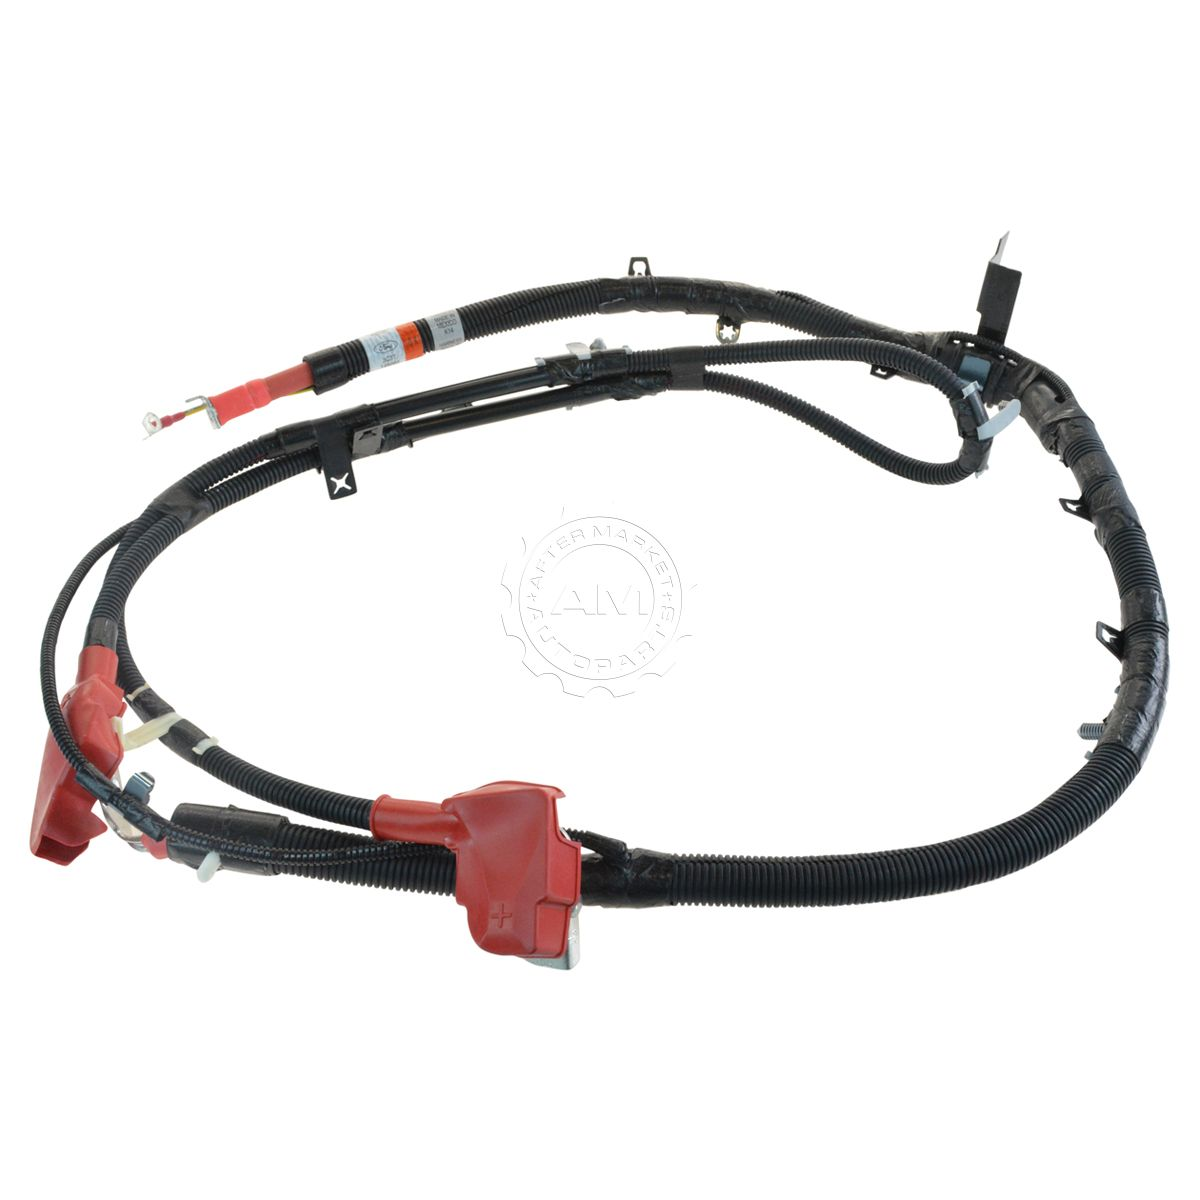 Motorcraft Wc95746 Positive Dual Battery Cable For Ford